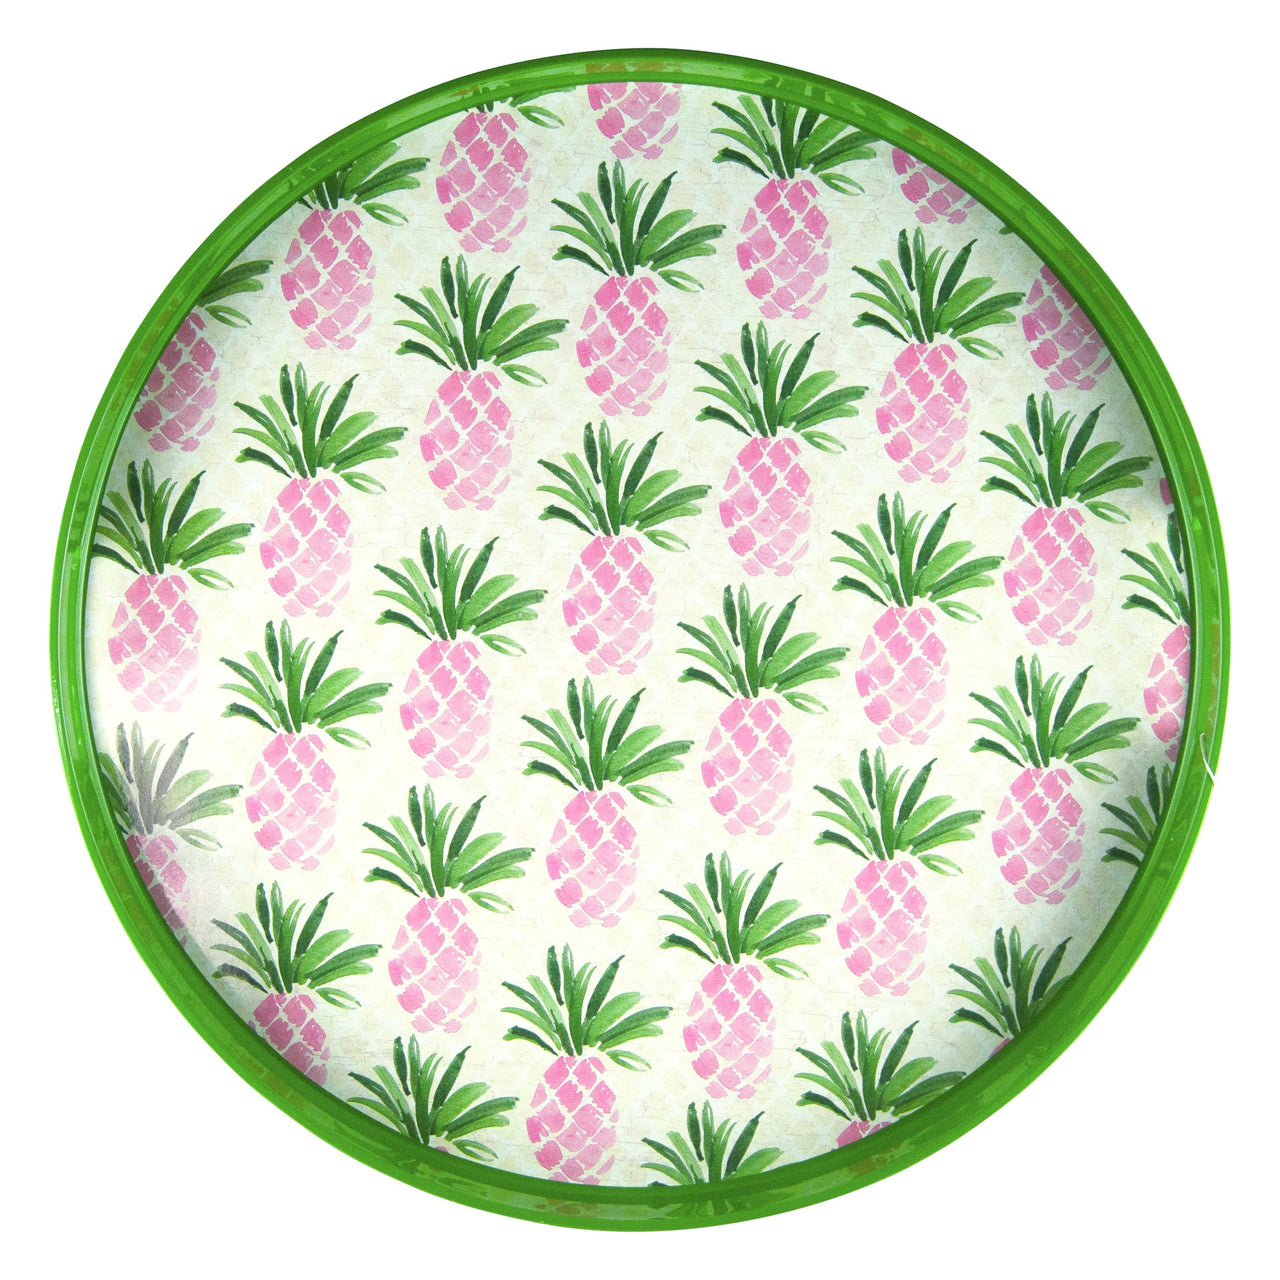 Pink Pineapple Round Lacquer Tray | The Hour Shop